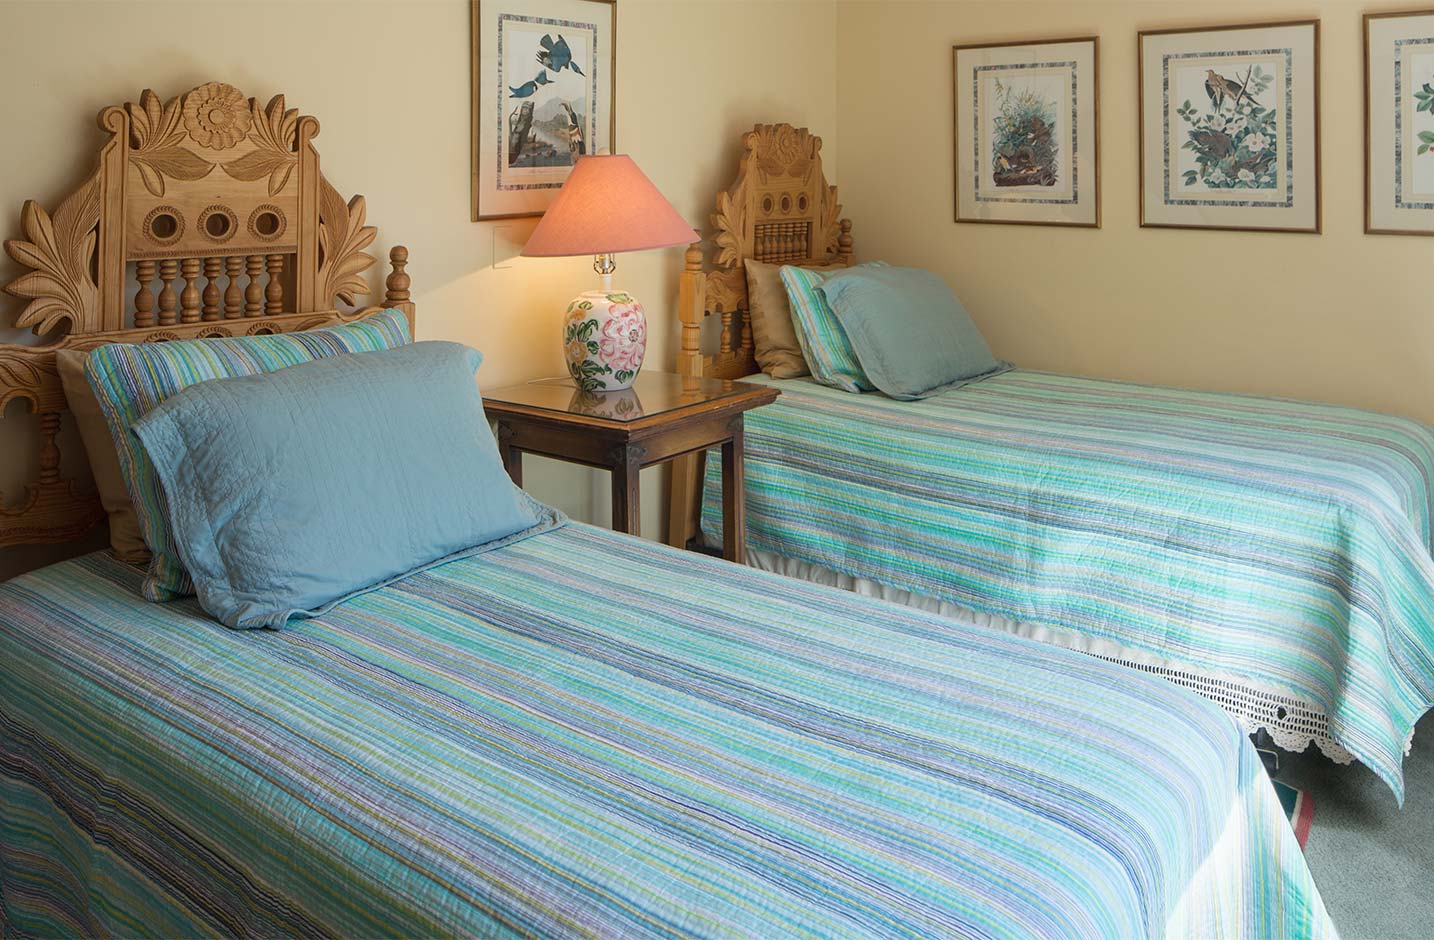 A room with two twin beds and matching teal bed spreads